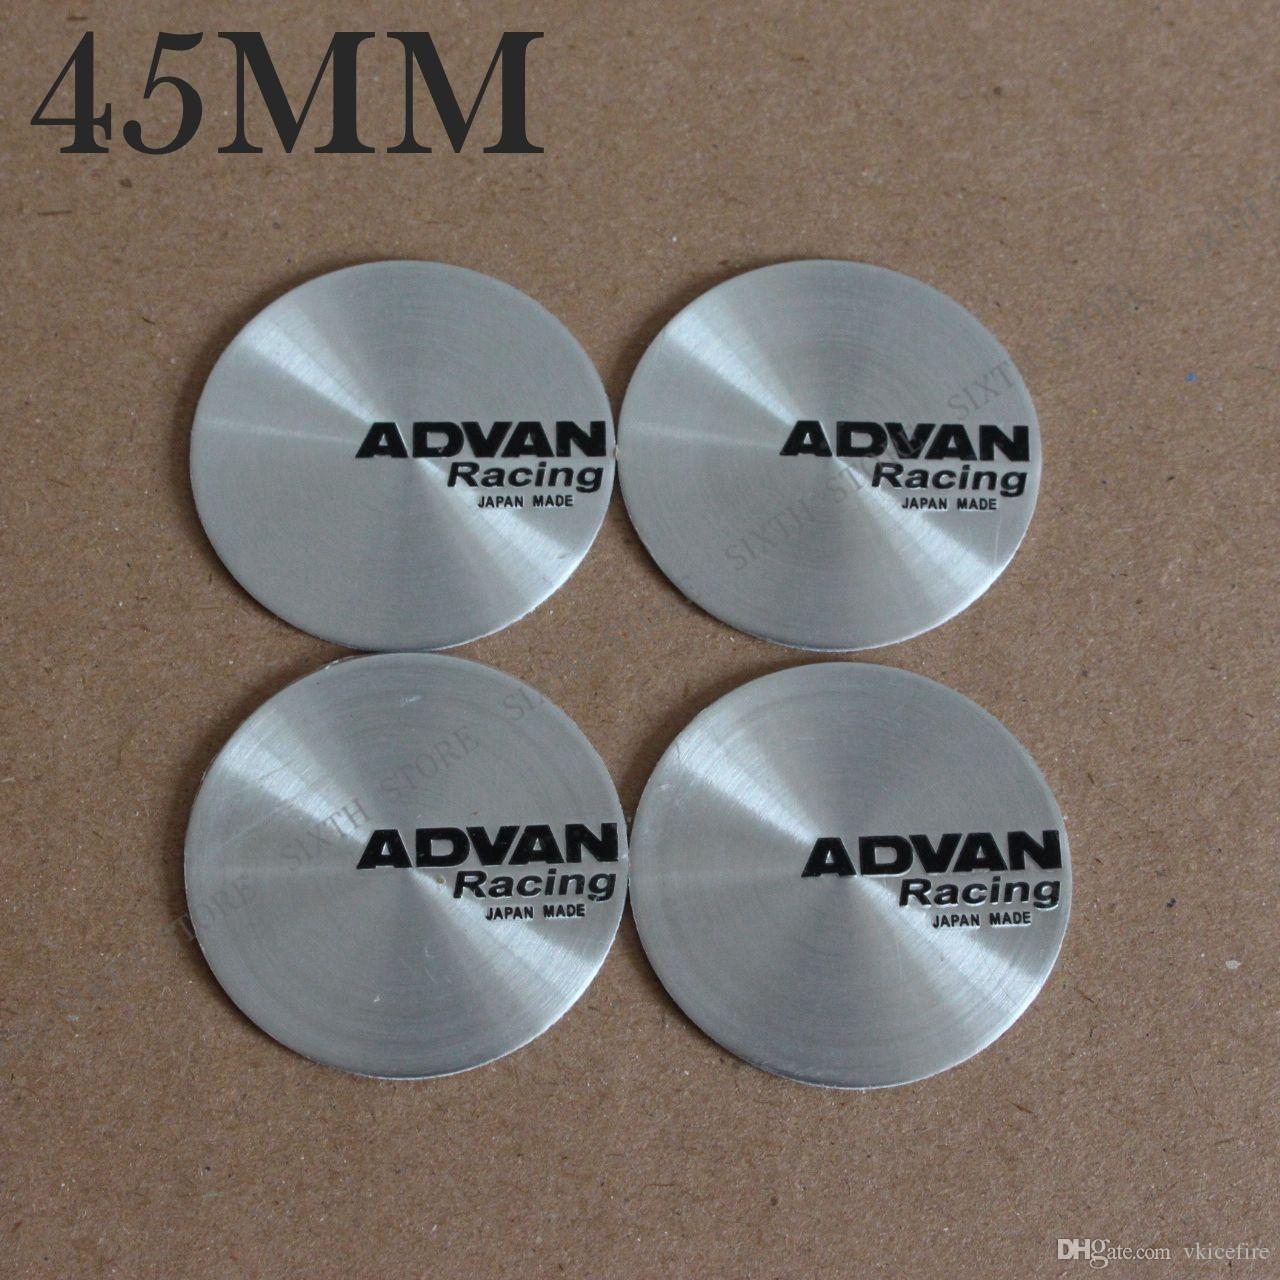 4pcs 45mm Racing Emblem Wheel Hub Caps Sticker Center Cover Racing Sport Decal